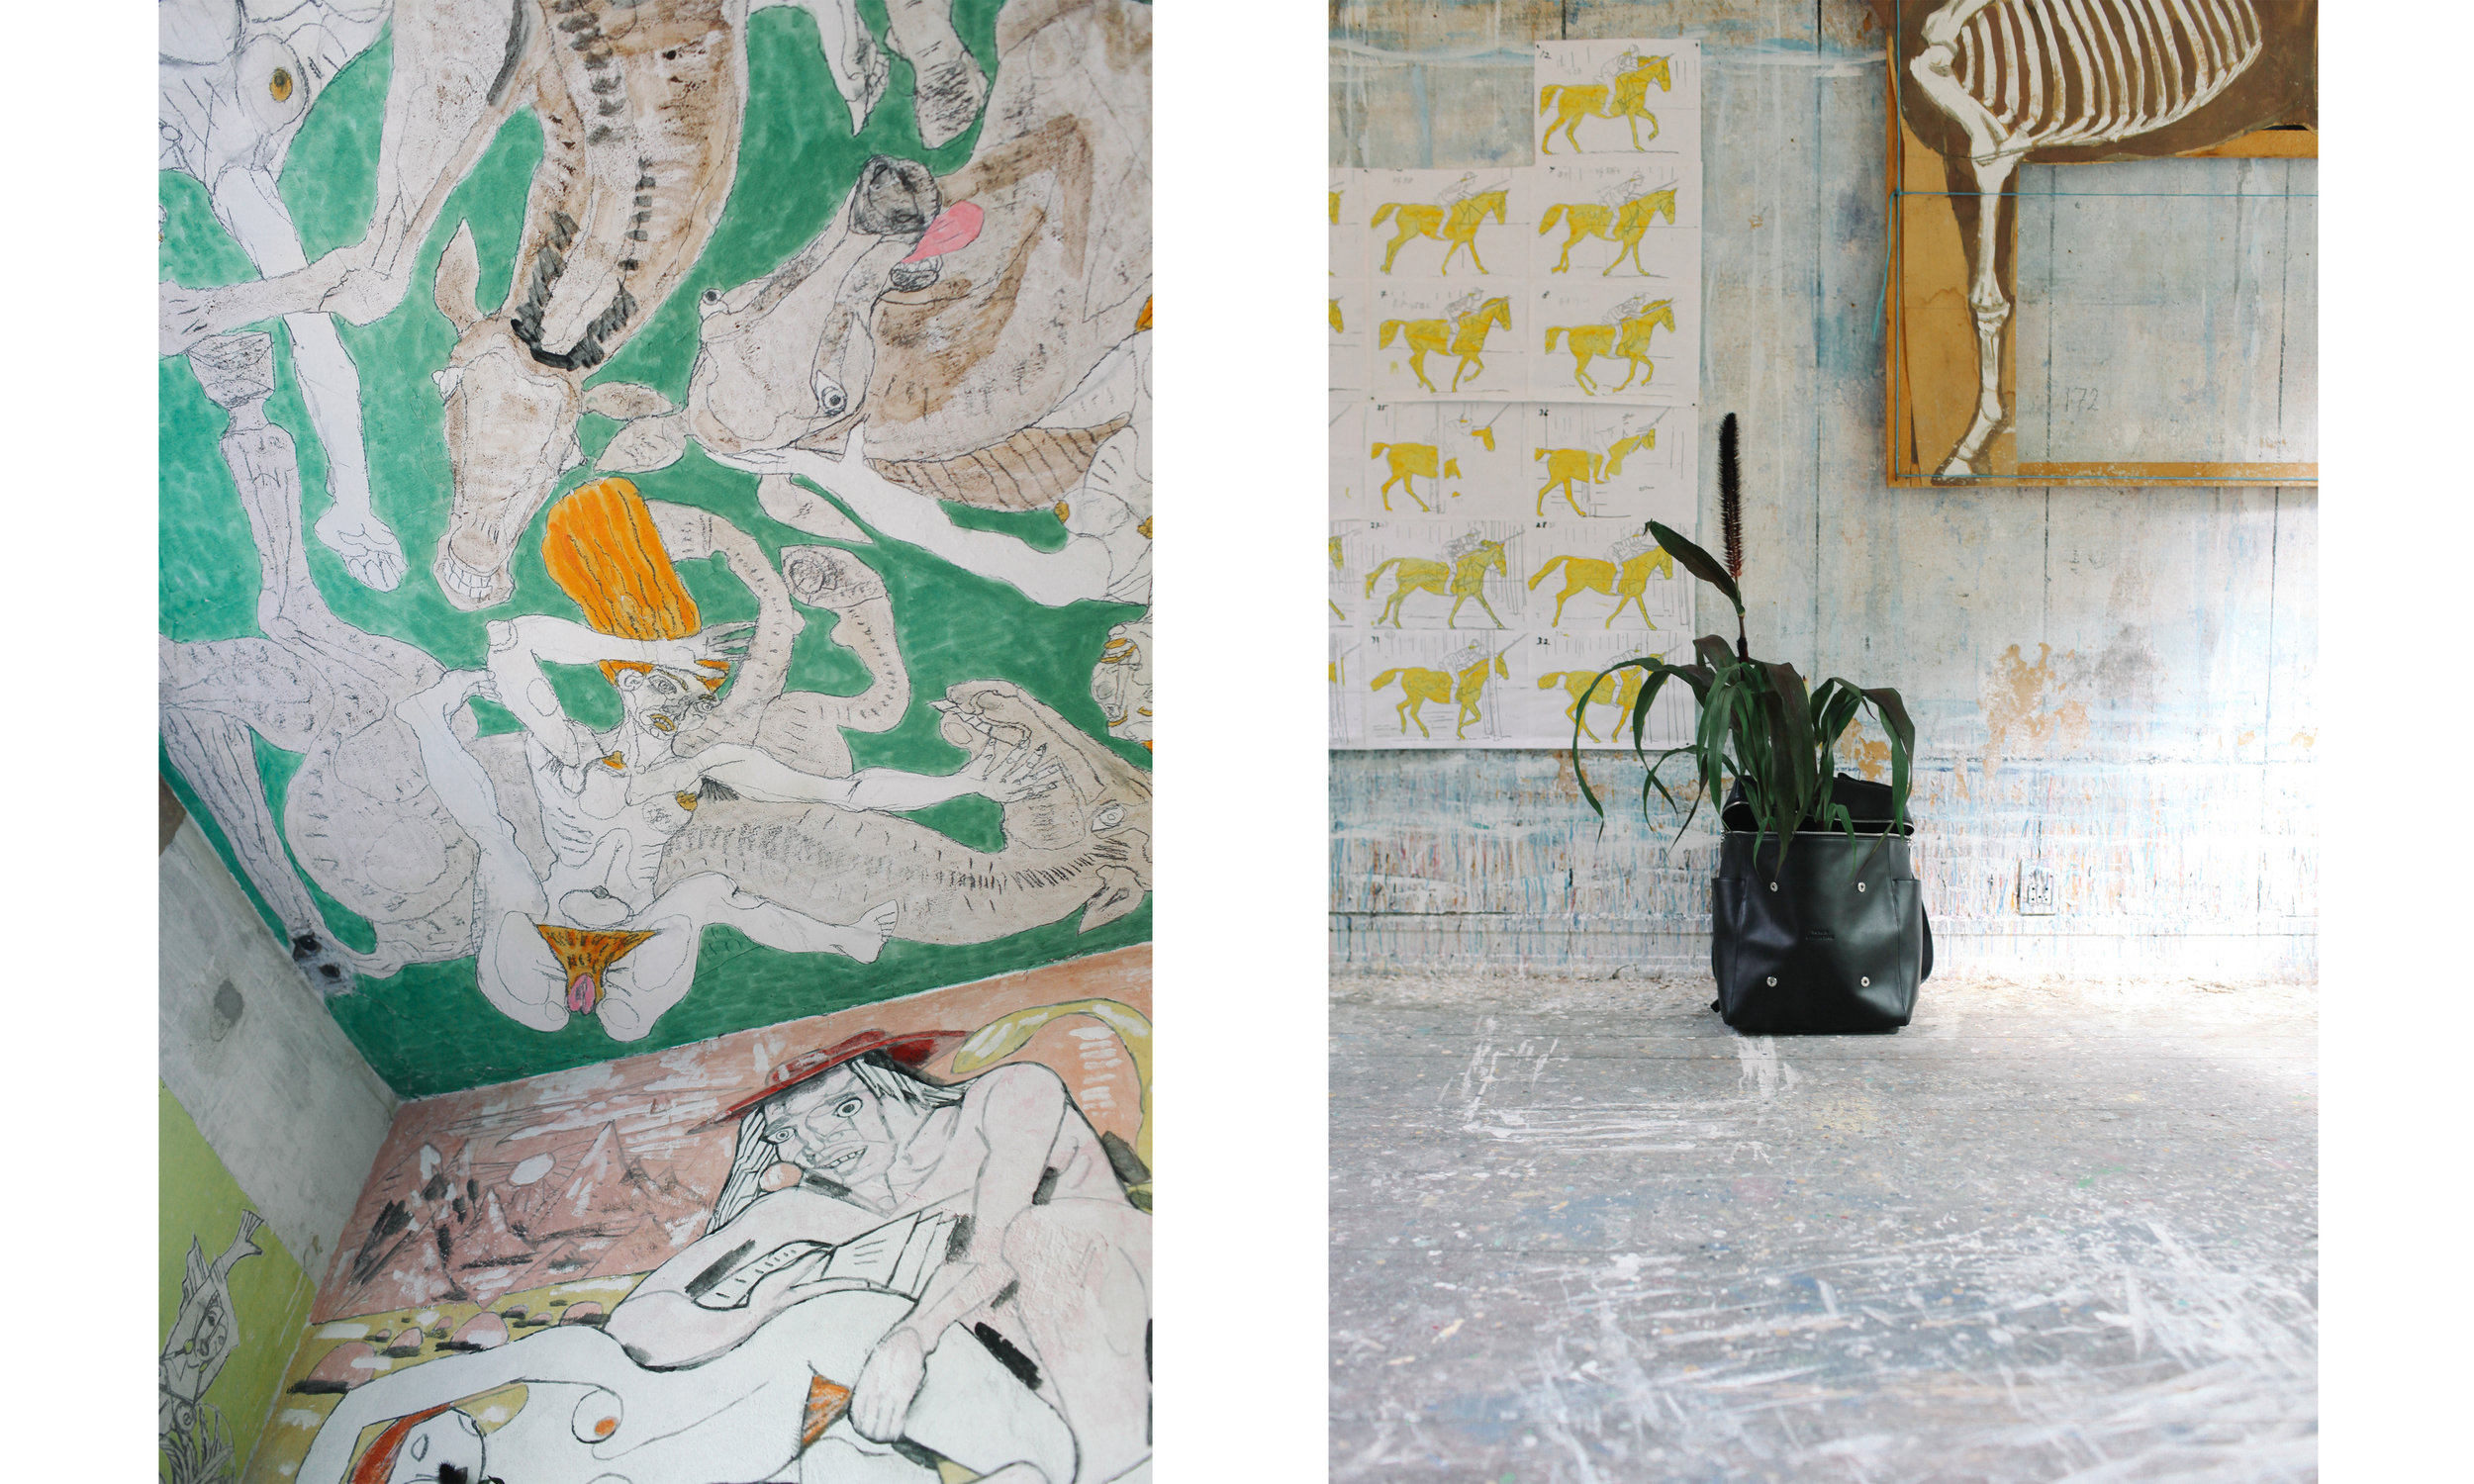 Wall painting at Richard Winther's residence and the BACKPACK 01. Photography by: Thomas Olafsson & Baixiang Chen